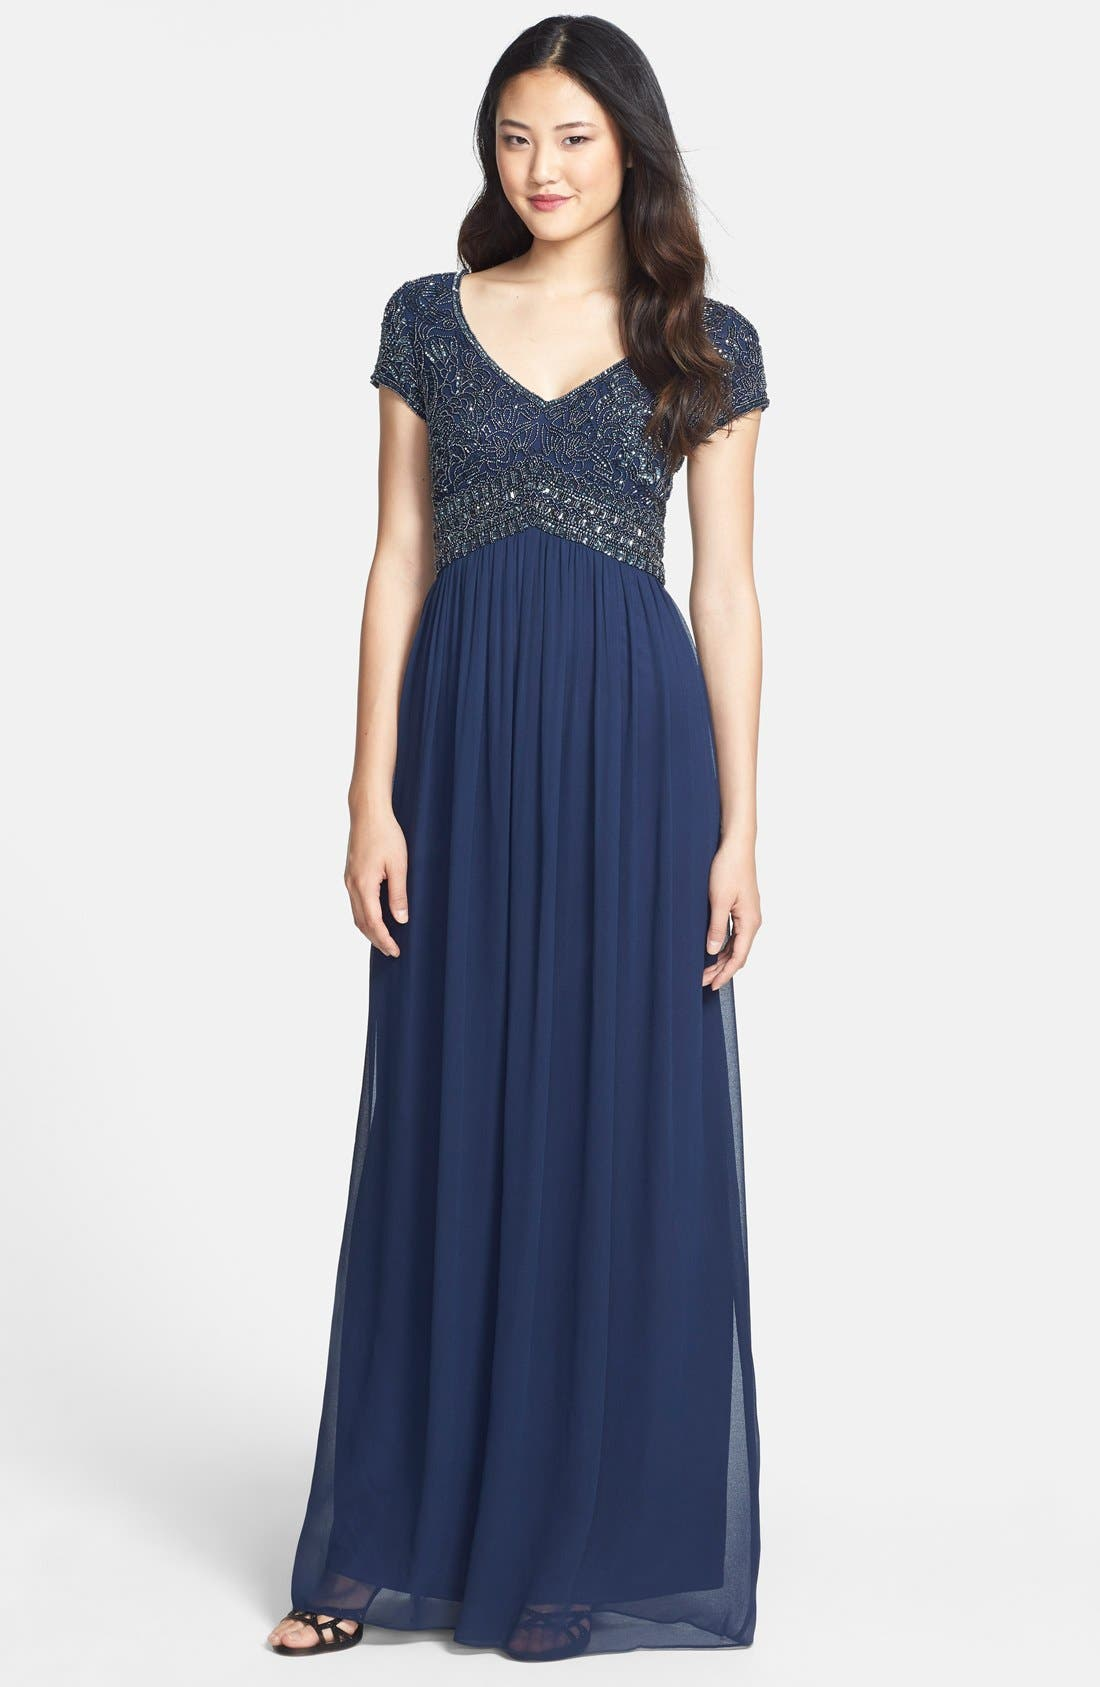 Alternate Image 1 Selected - Adrianna Papell Embellished Cap Sleeve Gown